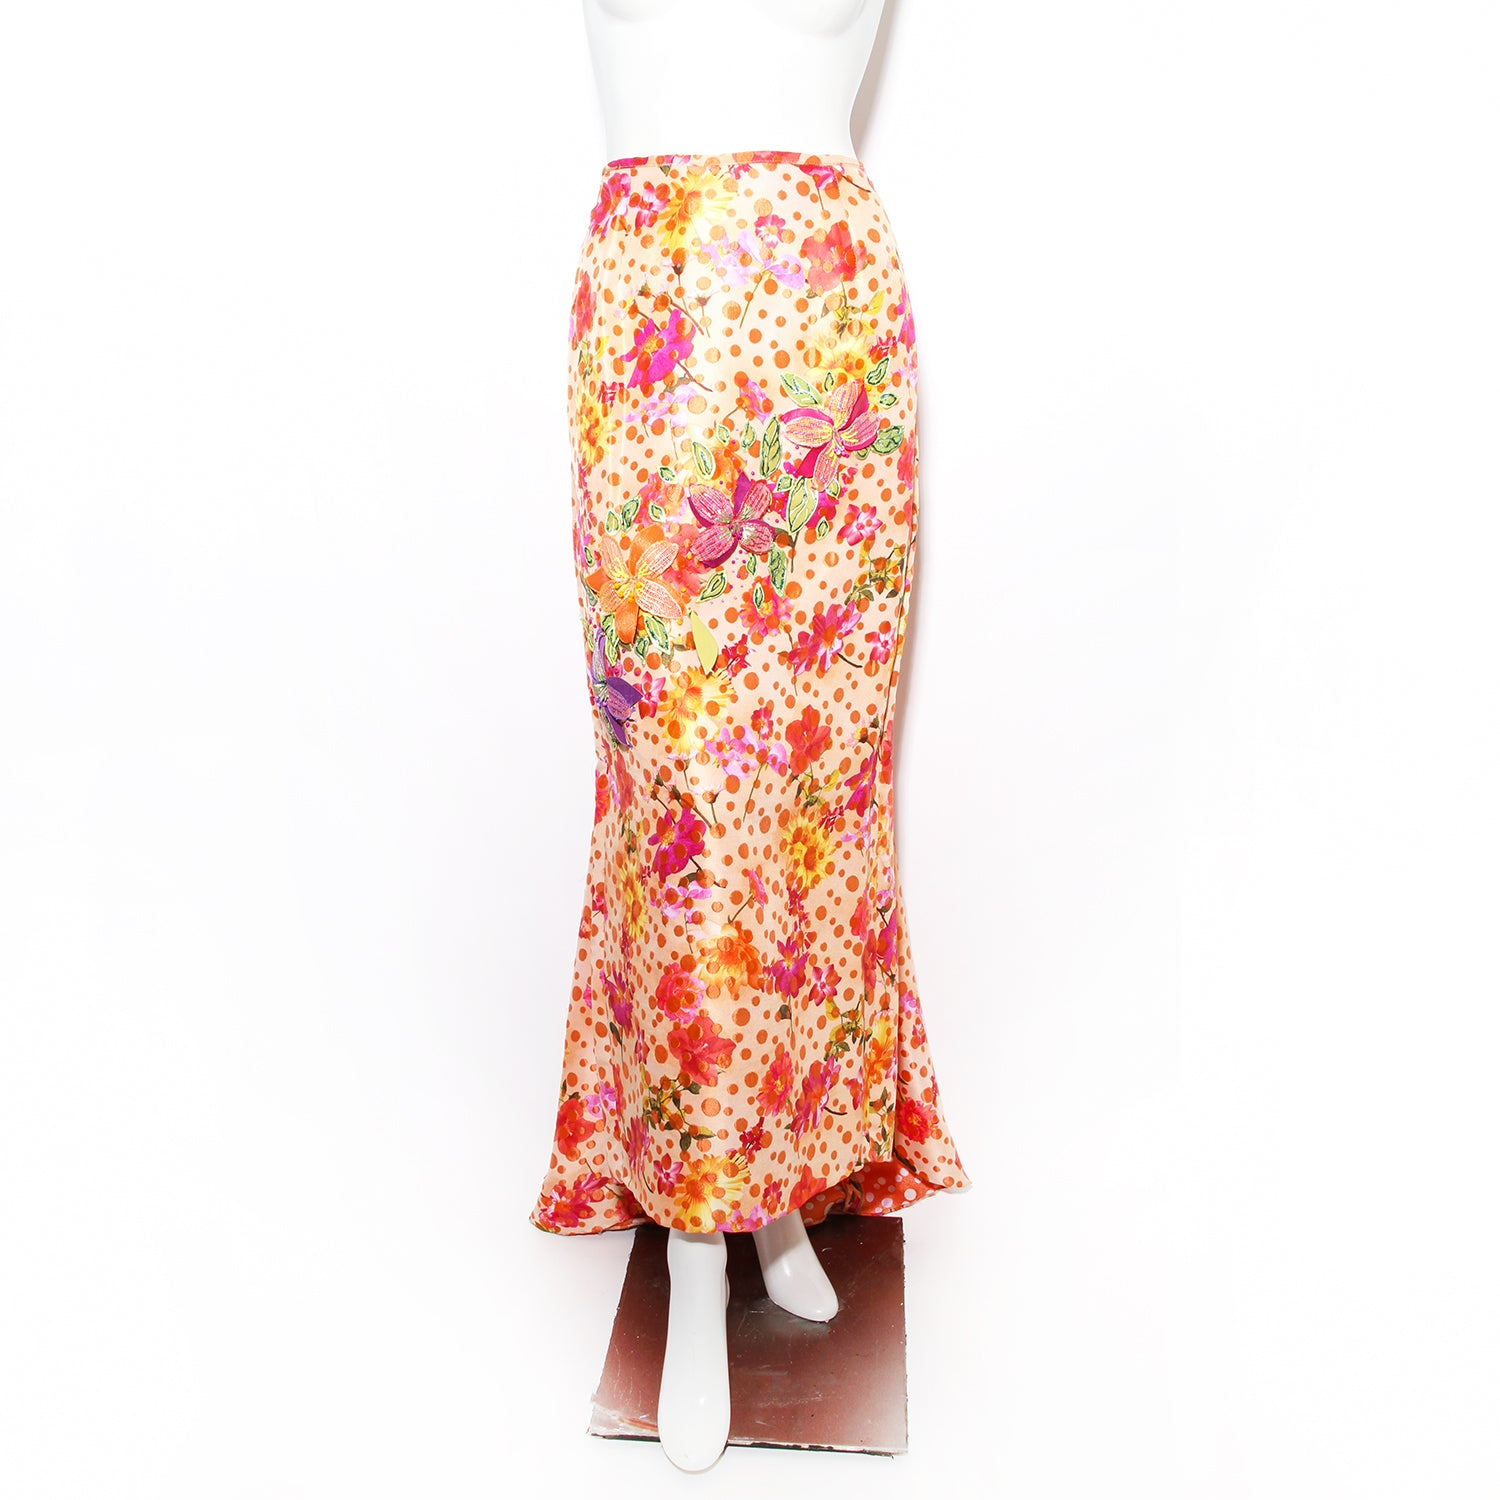 Vintage Anonymous Floral Embellished Skirt